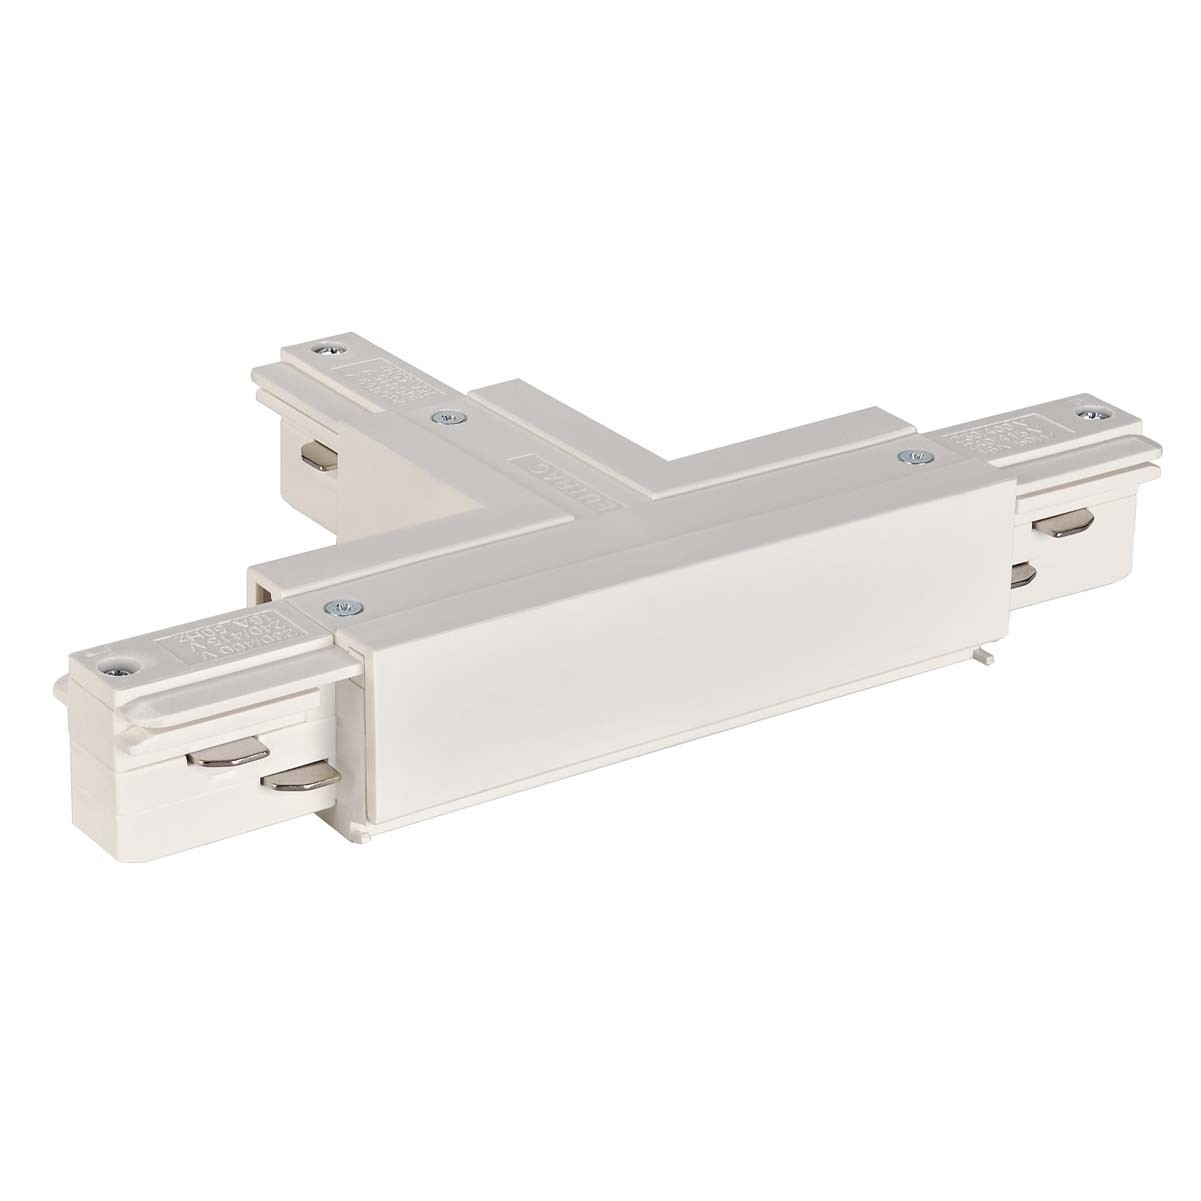 SLV 145631 T Coupler Earth Left White Eutrac 3 Circuit 240V Surface Track Accessory